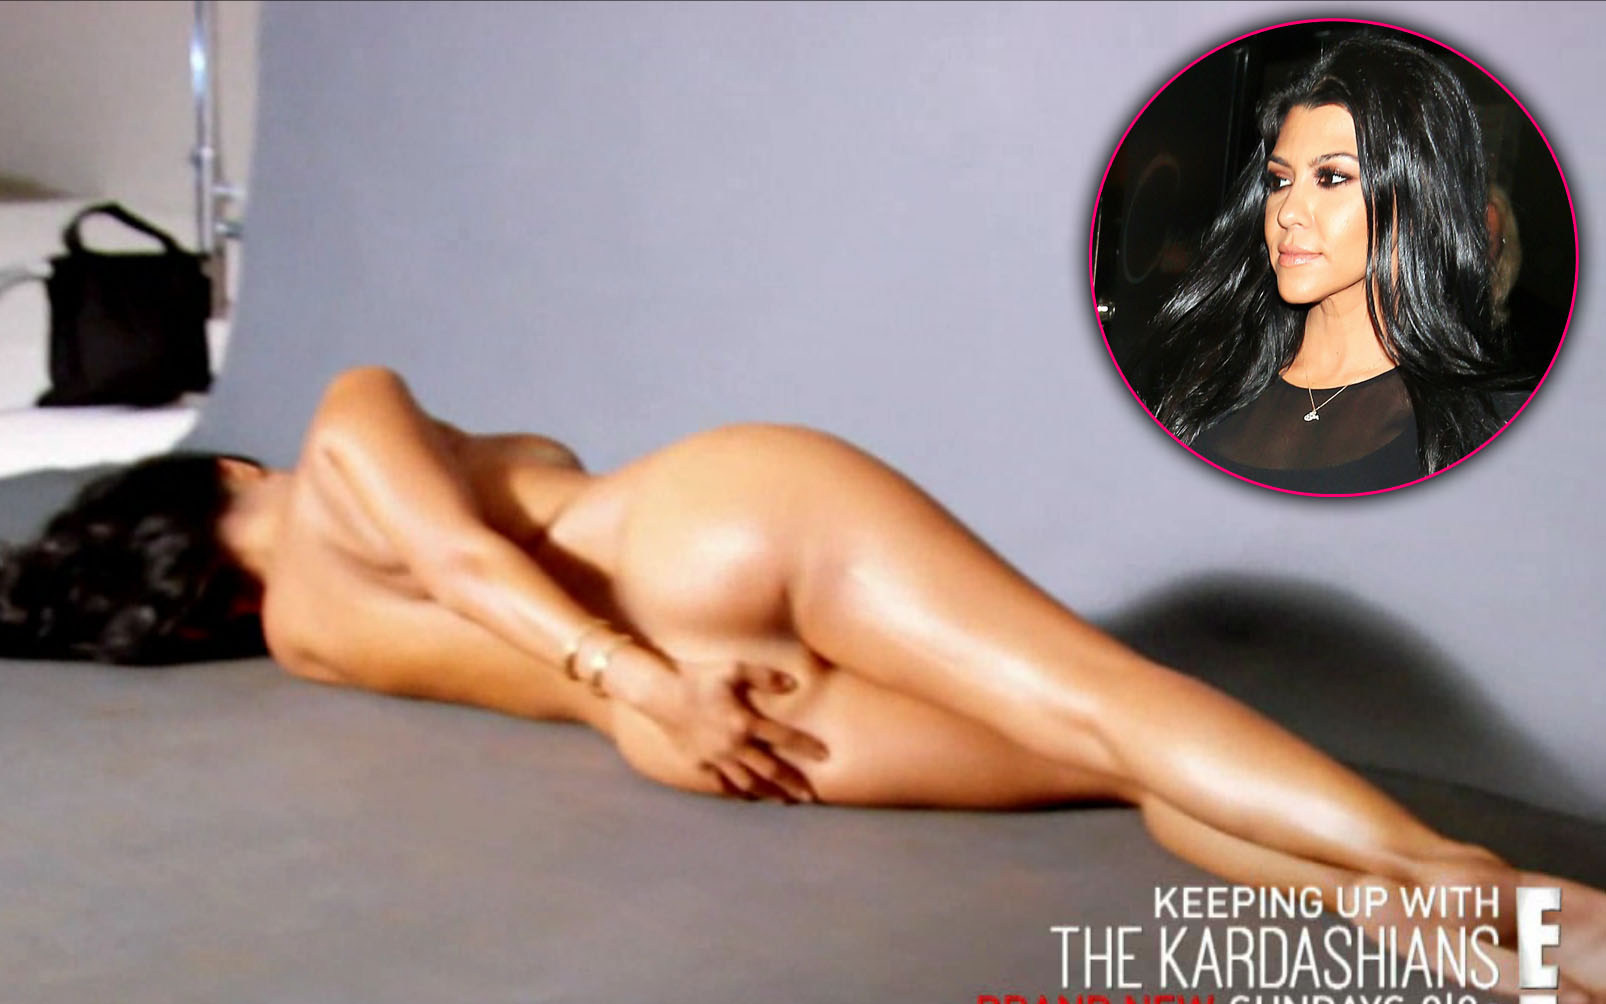 Kourtney kardashian nude photos kuwtk 10